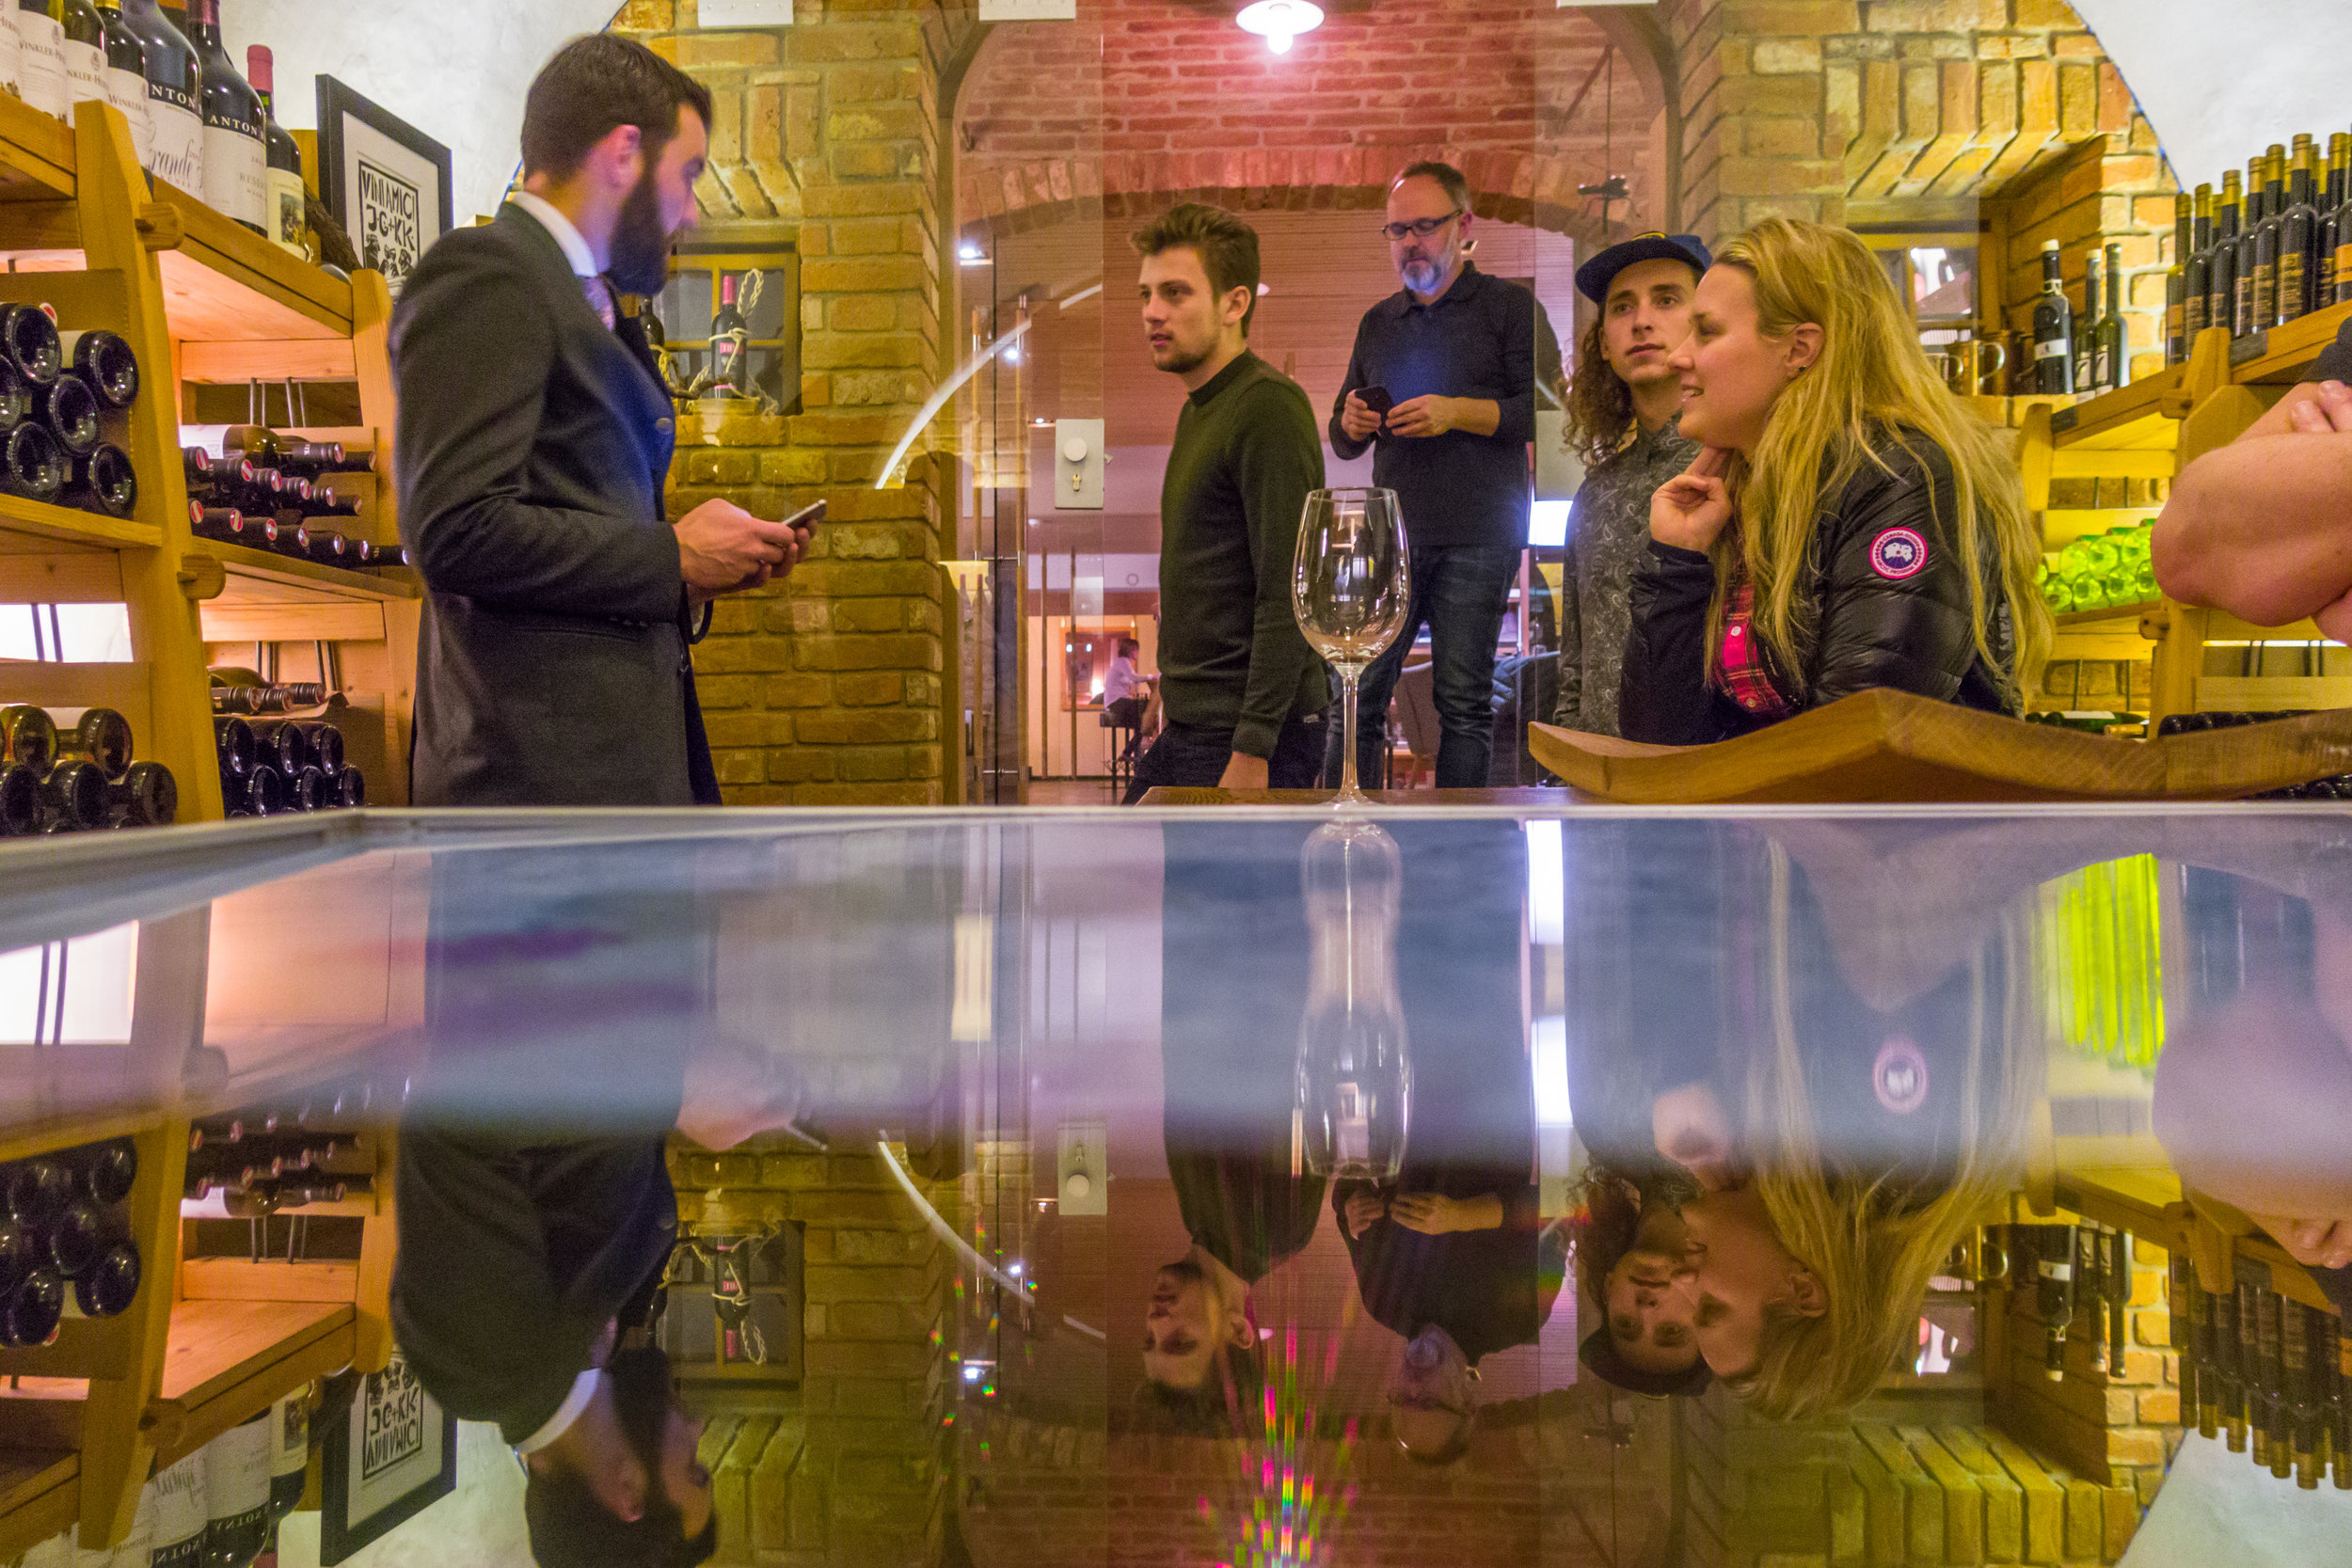 Tour of the wine cellar at Hotel Chesa Valisa